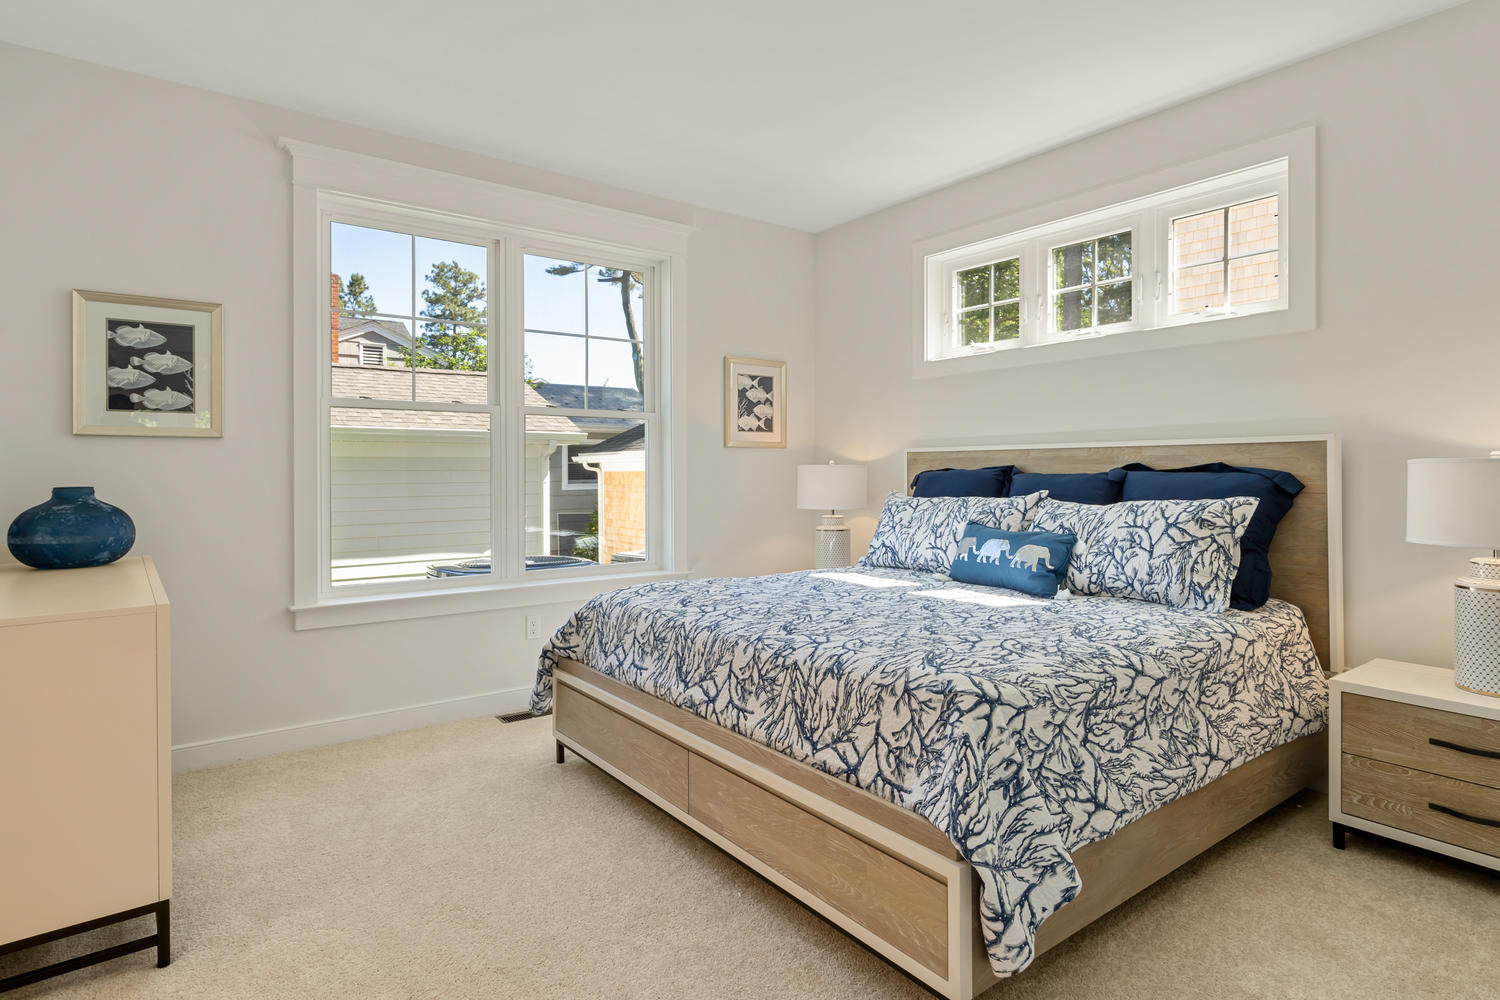 Staged Bedroom with Large Bed, Dresser and Large Exterior Windows